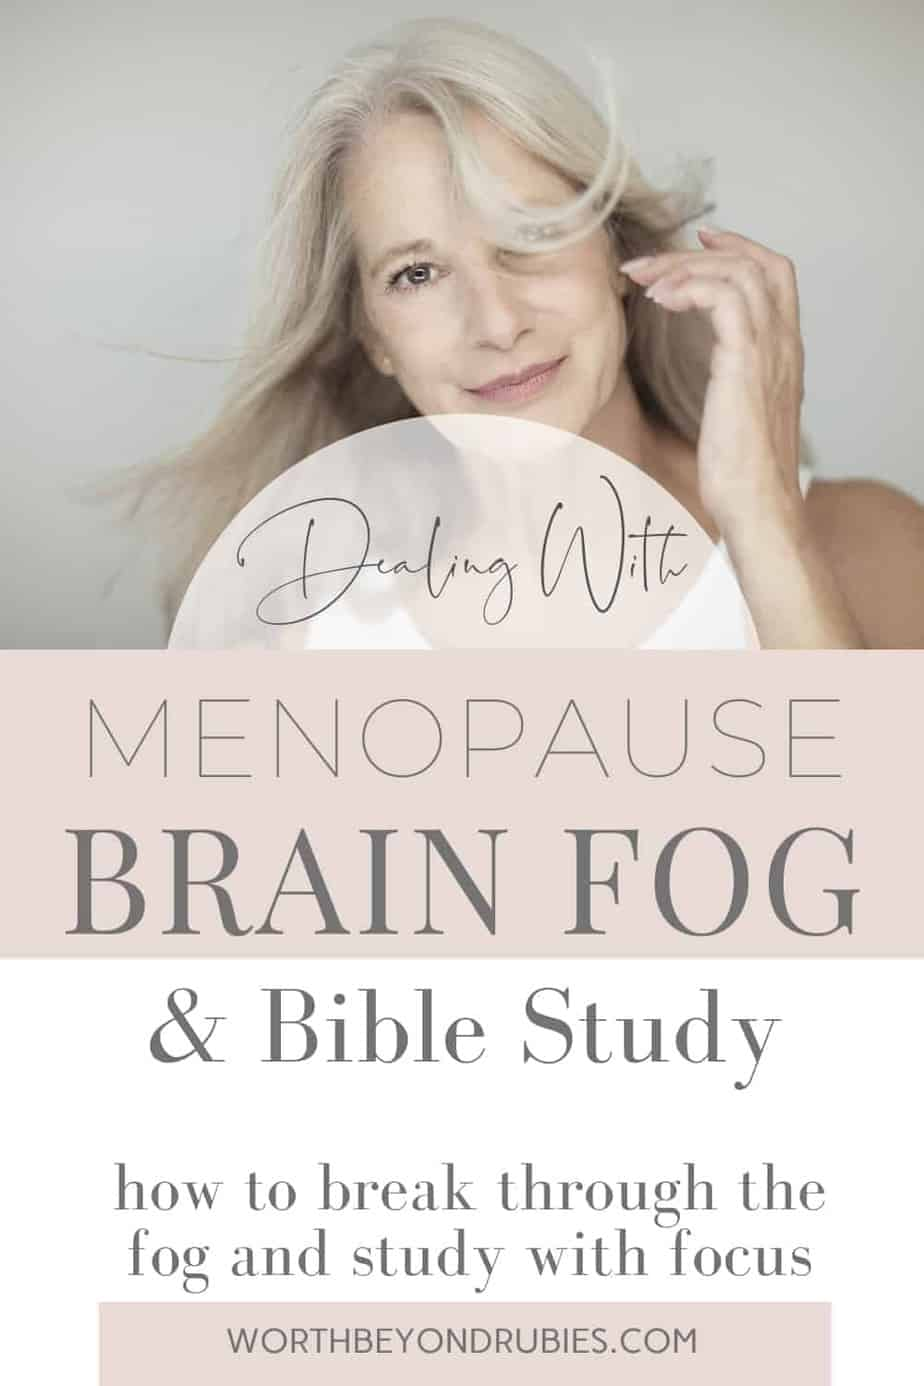 An image of a beautiful, middle aged woman with long blondish-gray hair and text that says Menopause Brain Fog and Bible Study - How to Break Through That Fog!